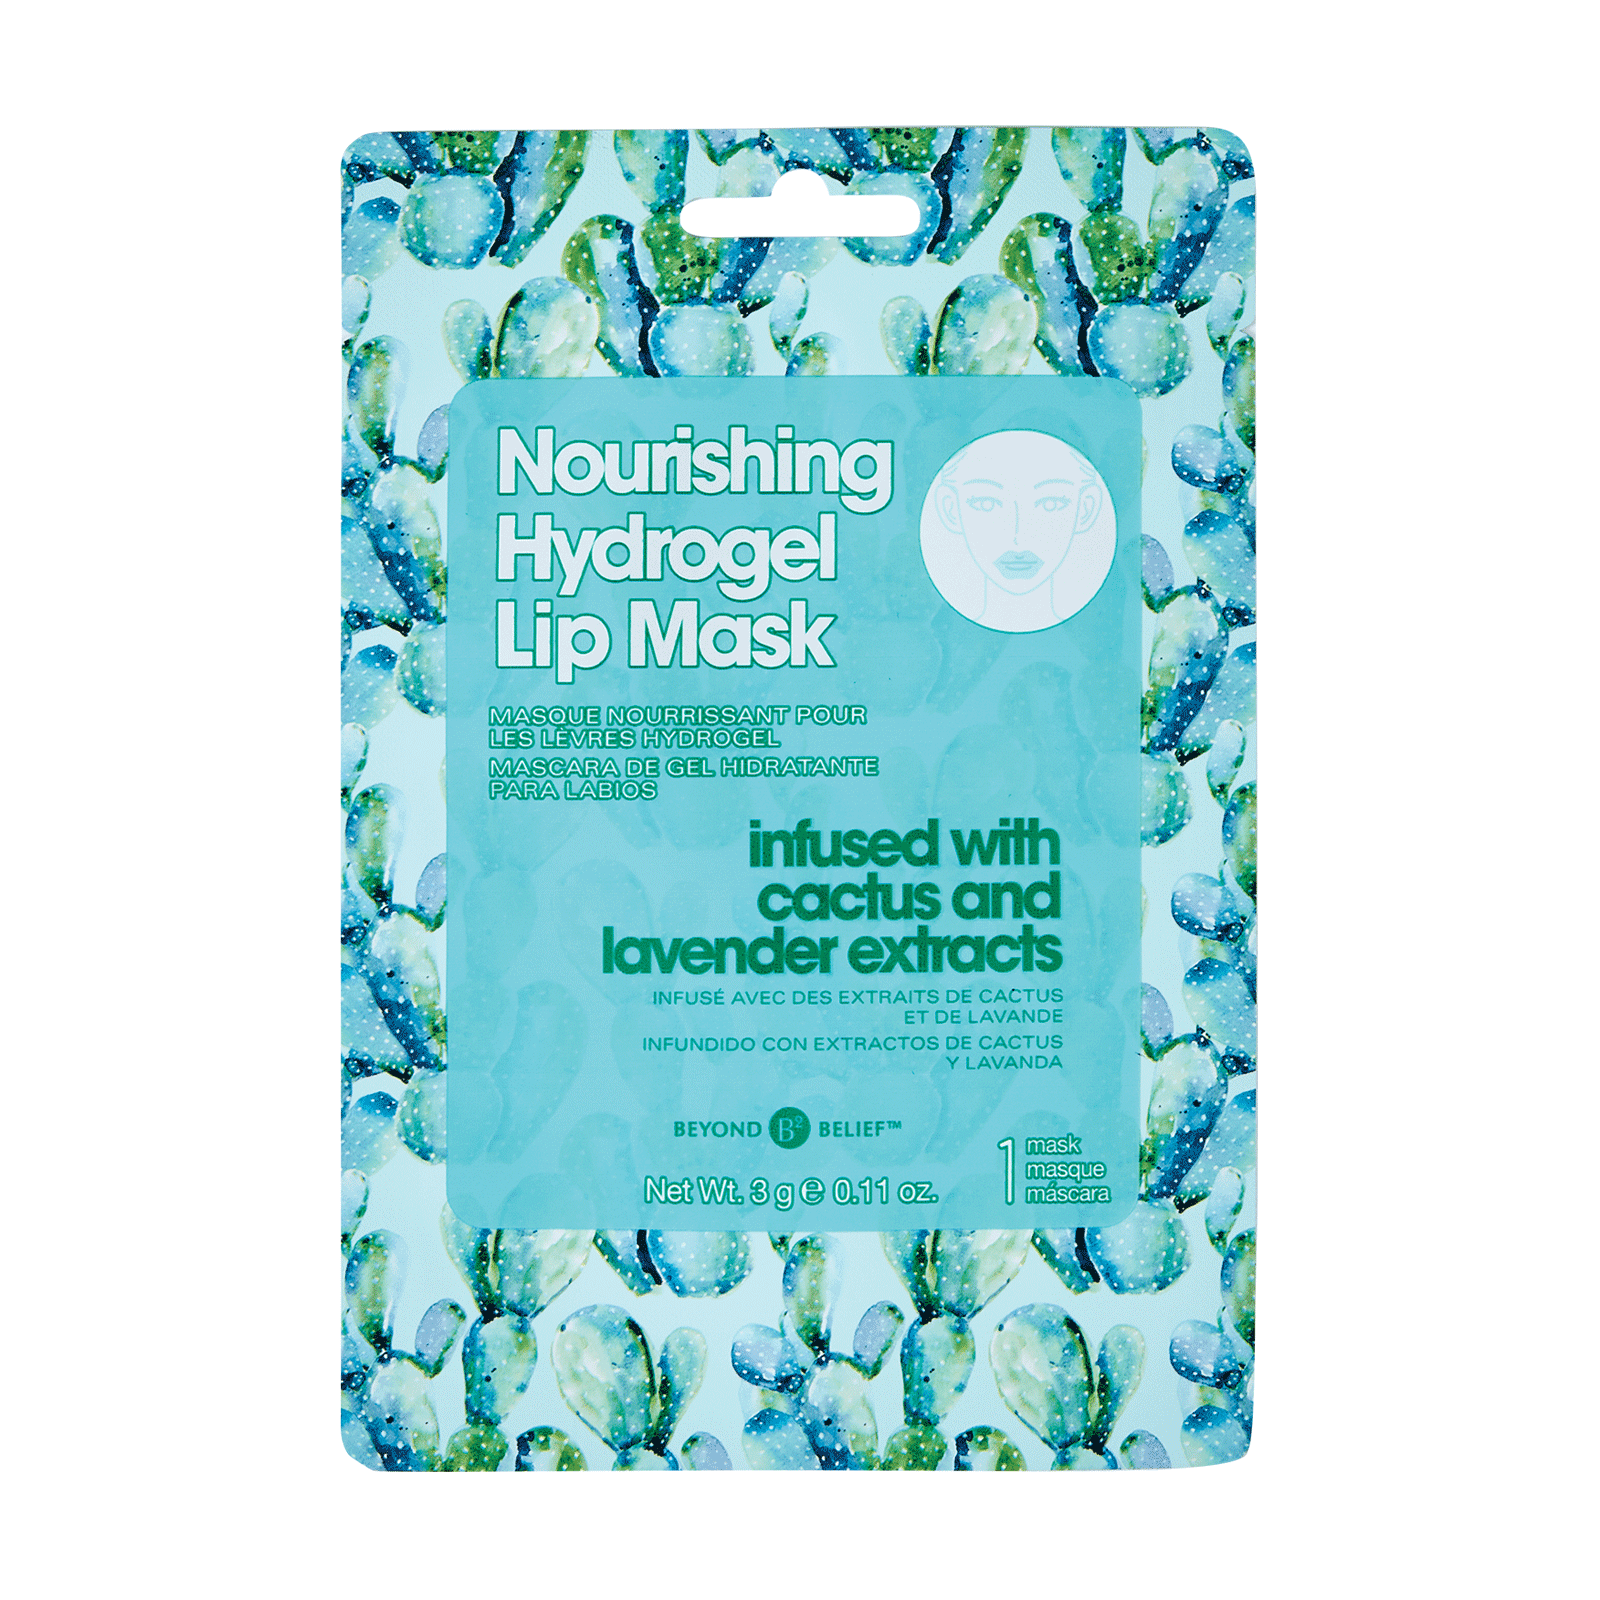 Nourishing Hydragel Lip Mask